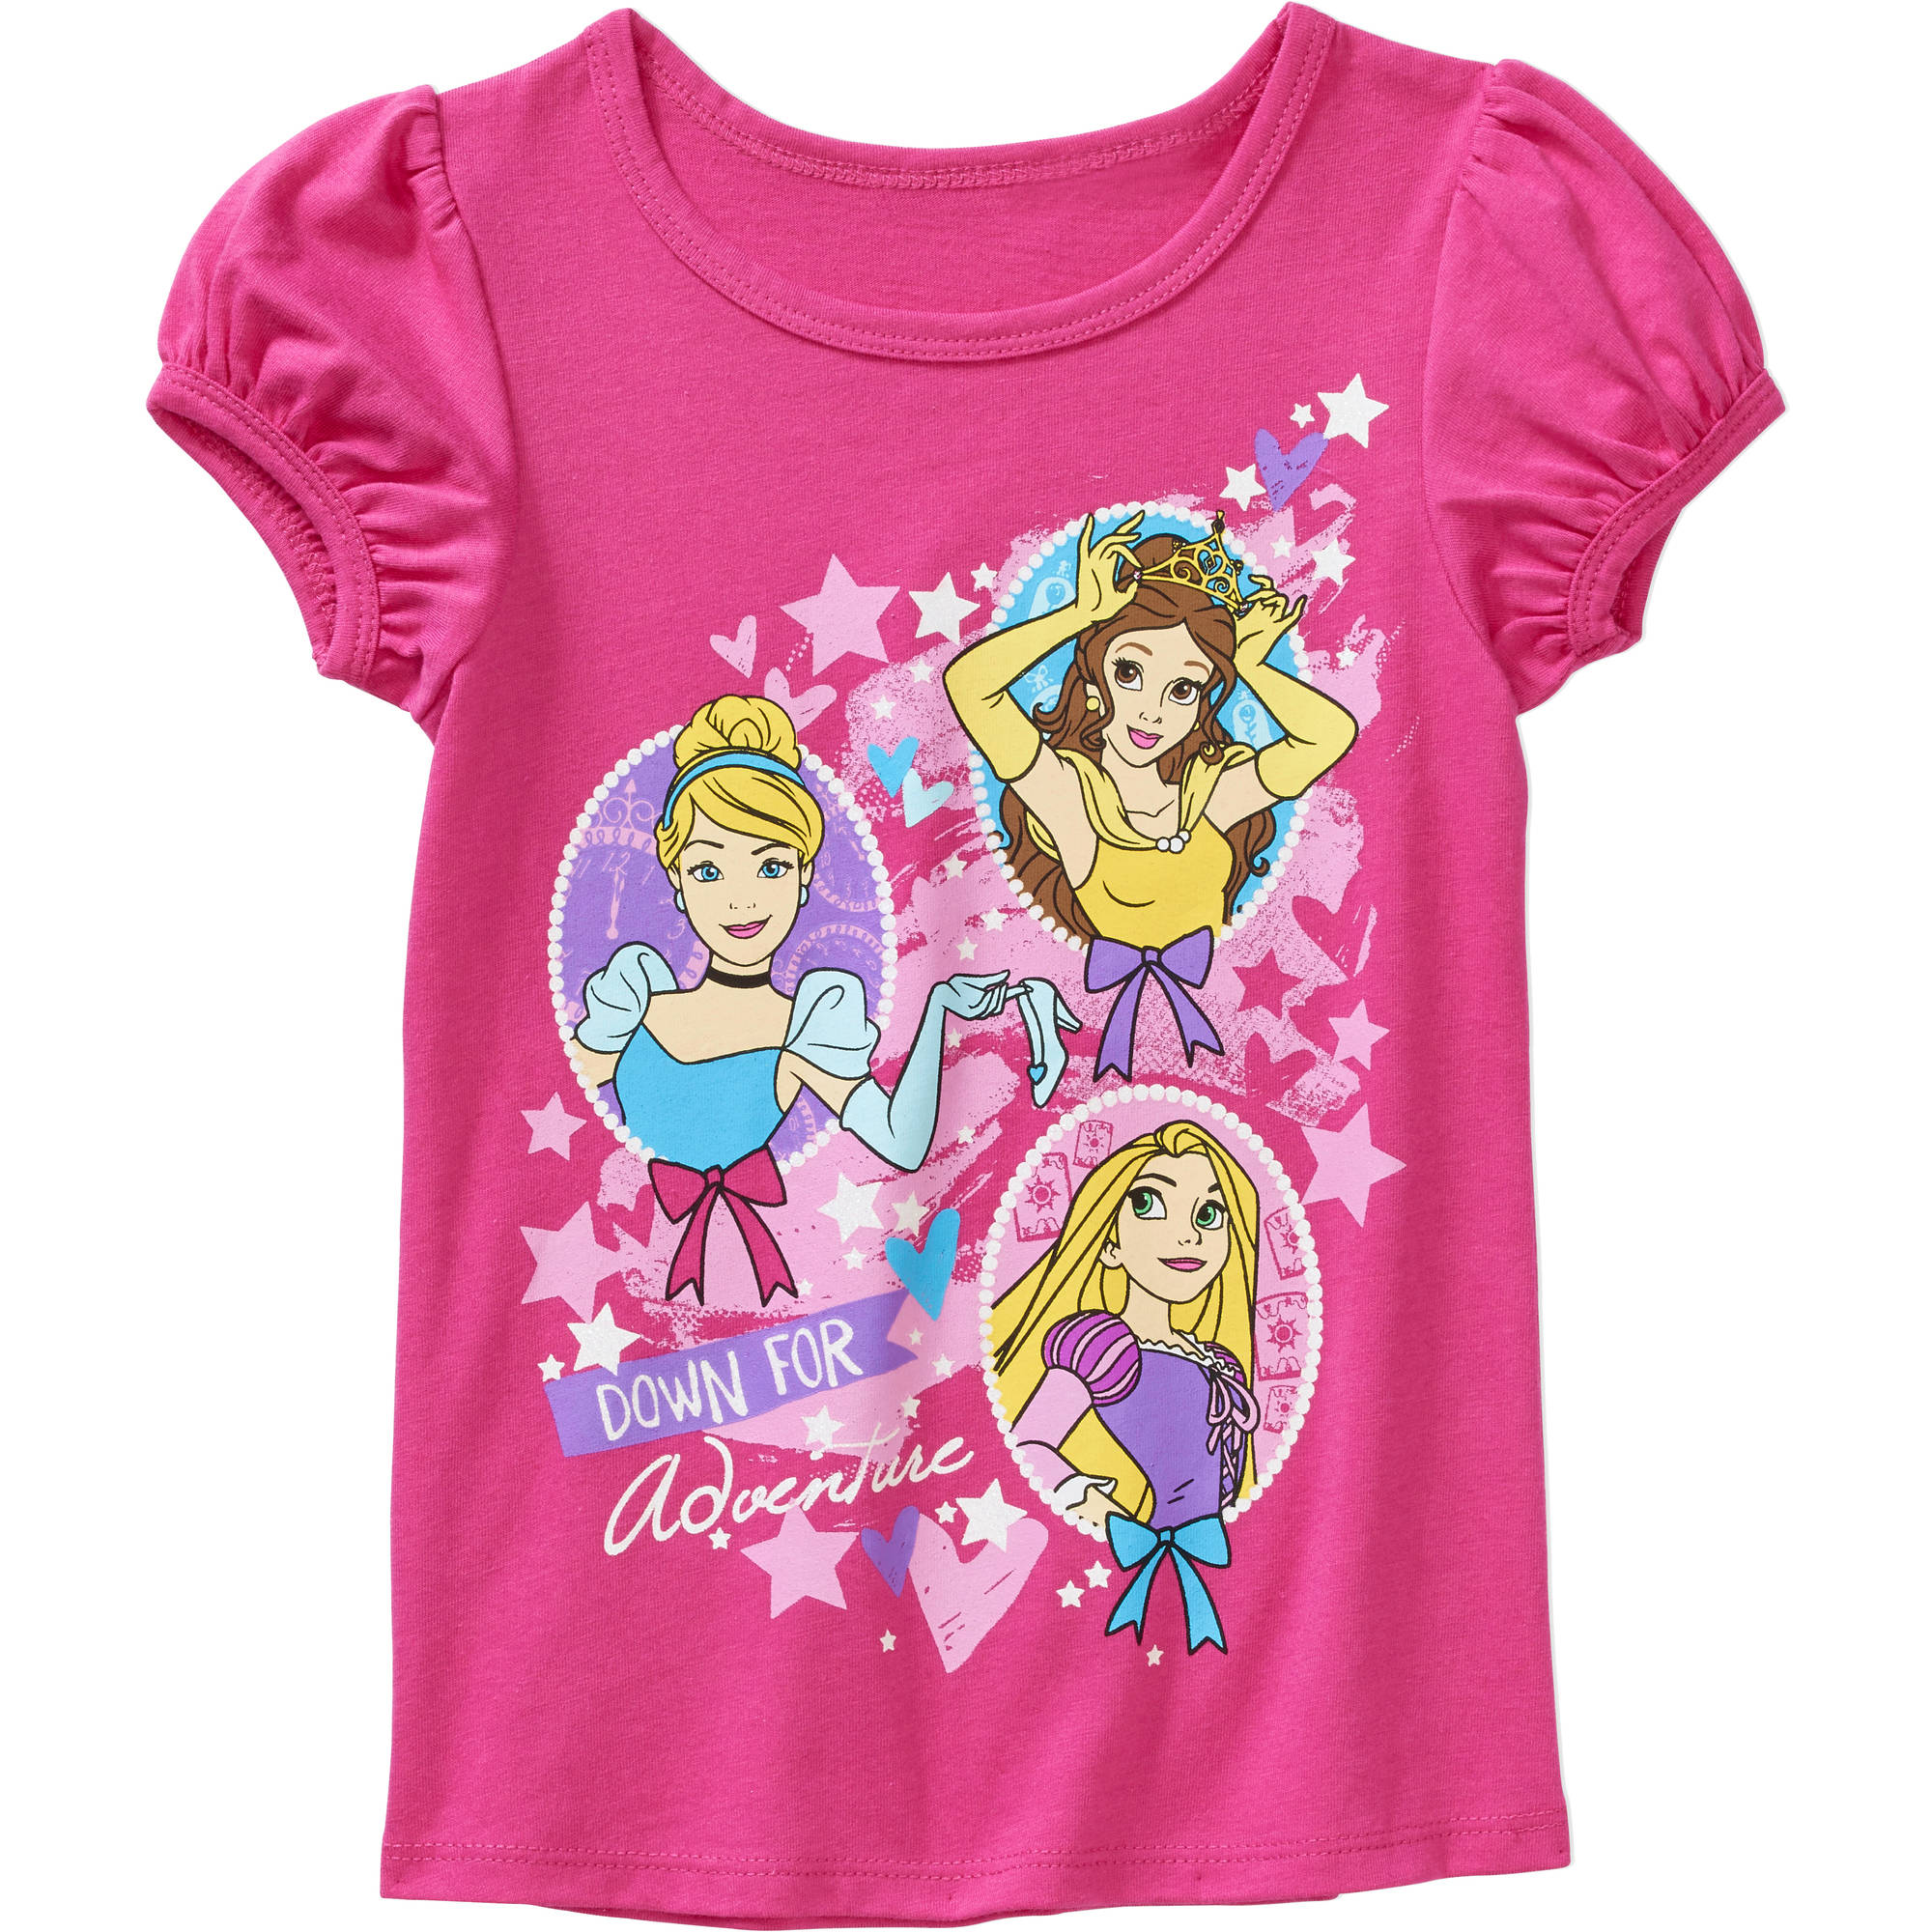 Disney Princess Toddler Girl Short Sleeve Tee